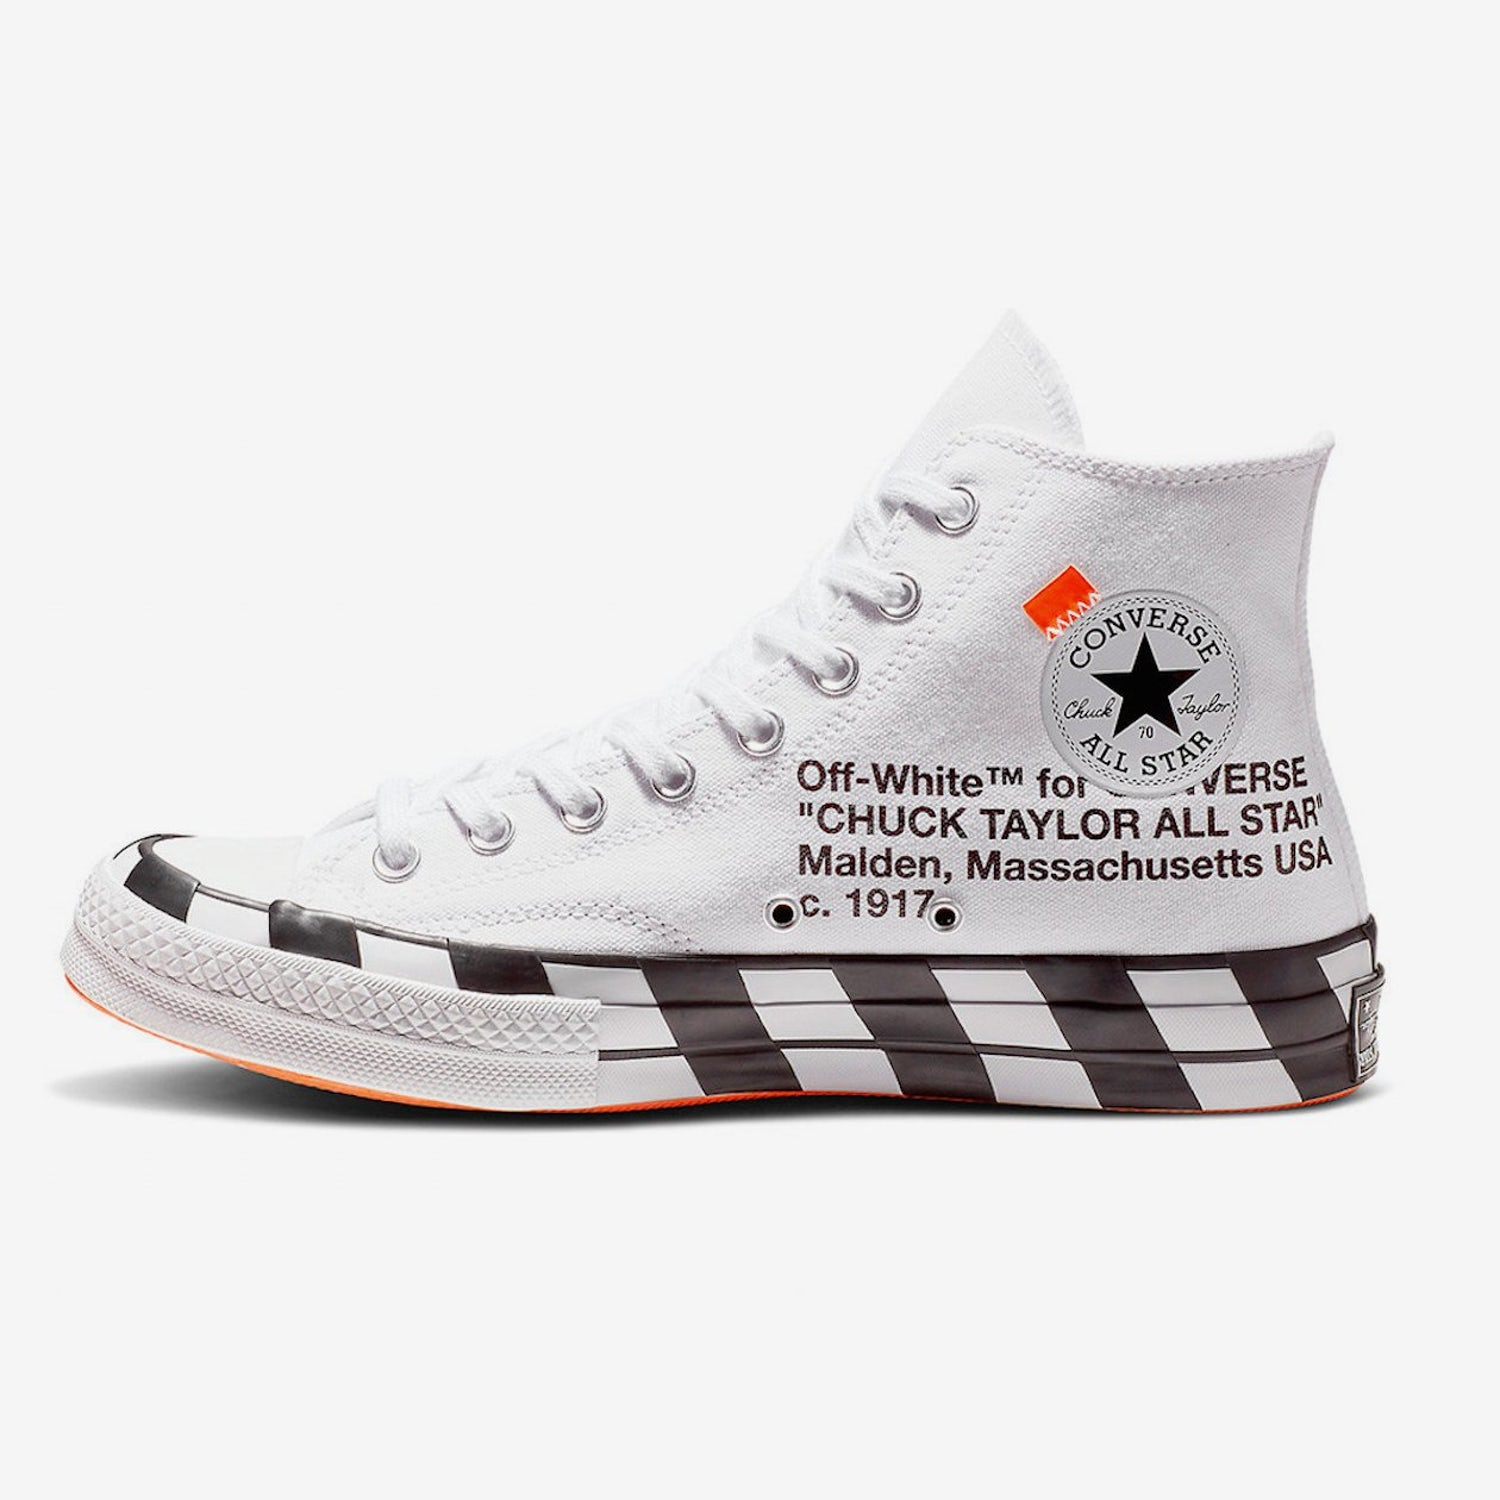 chucks off white converse halloween orange 2000x 0